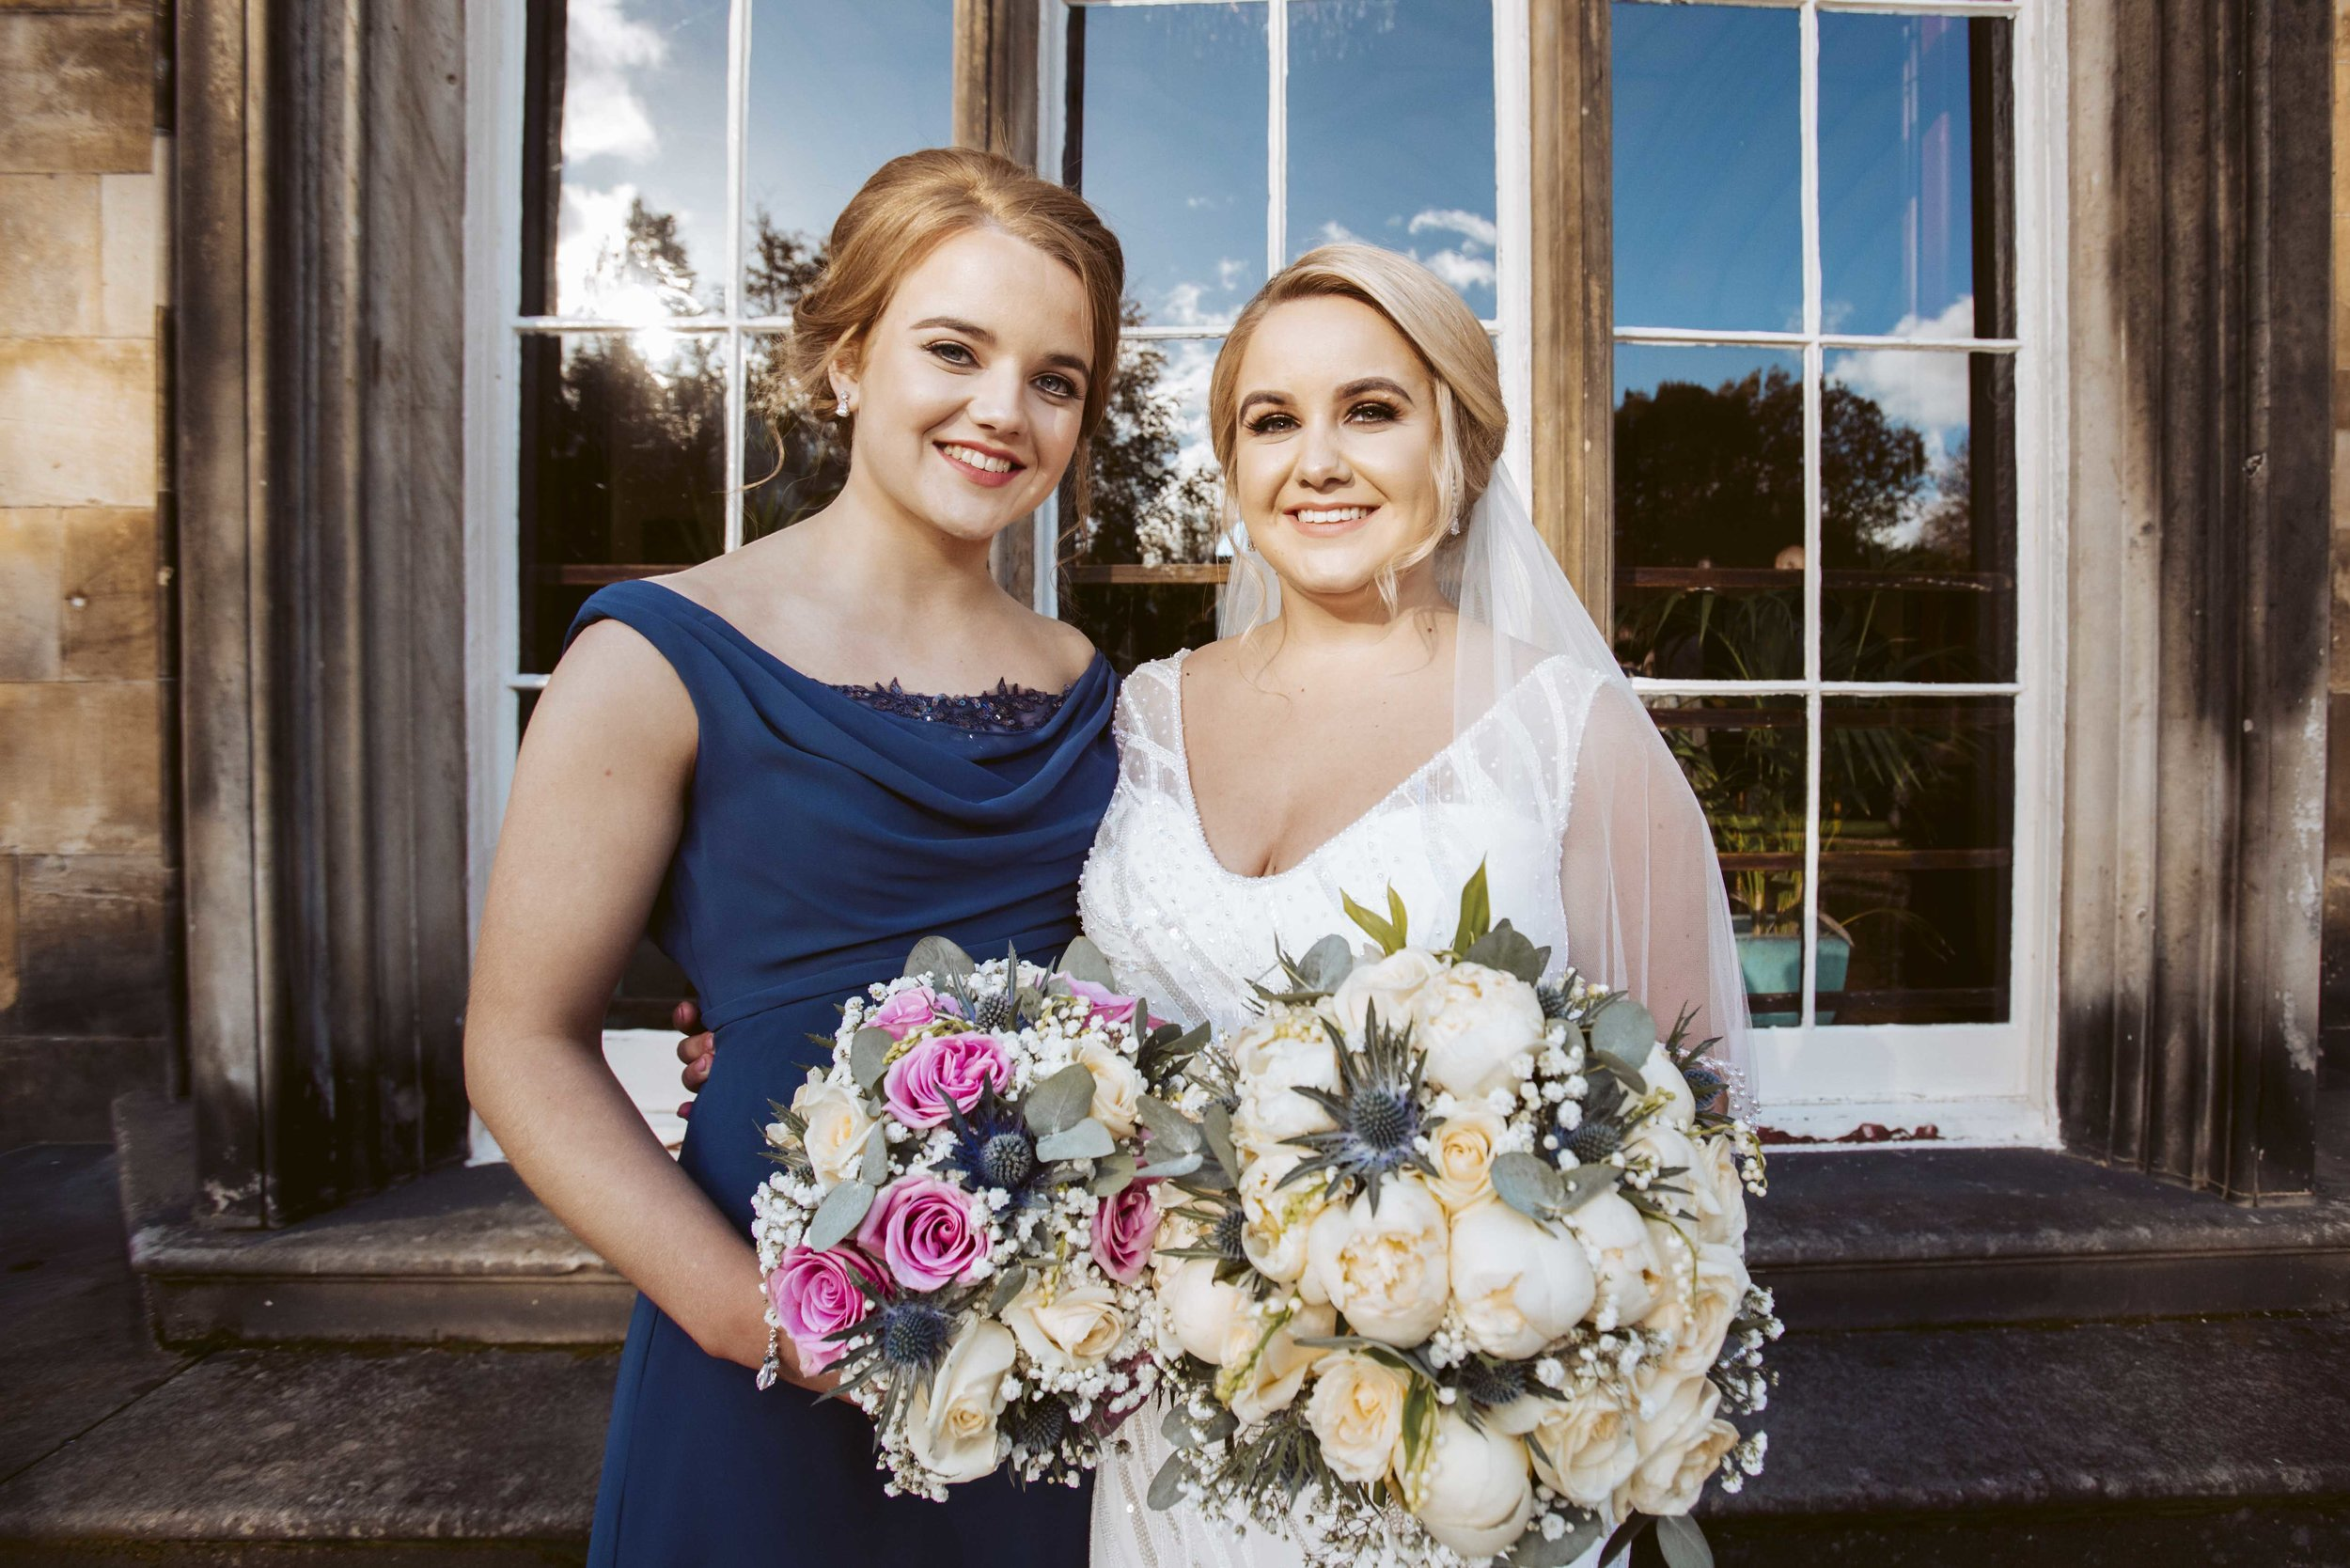 Mar Hall Wedding 2018, Haminsh & Emma McEwan 42.JPG